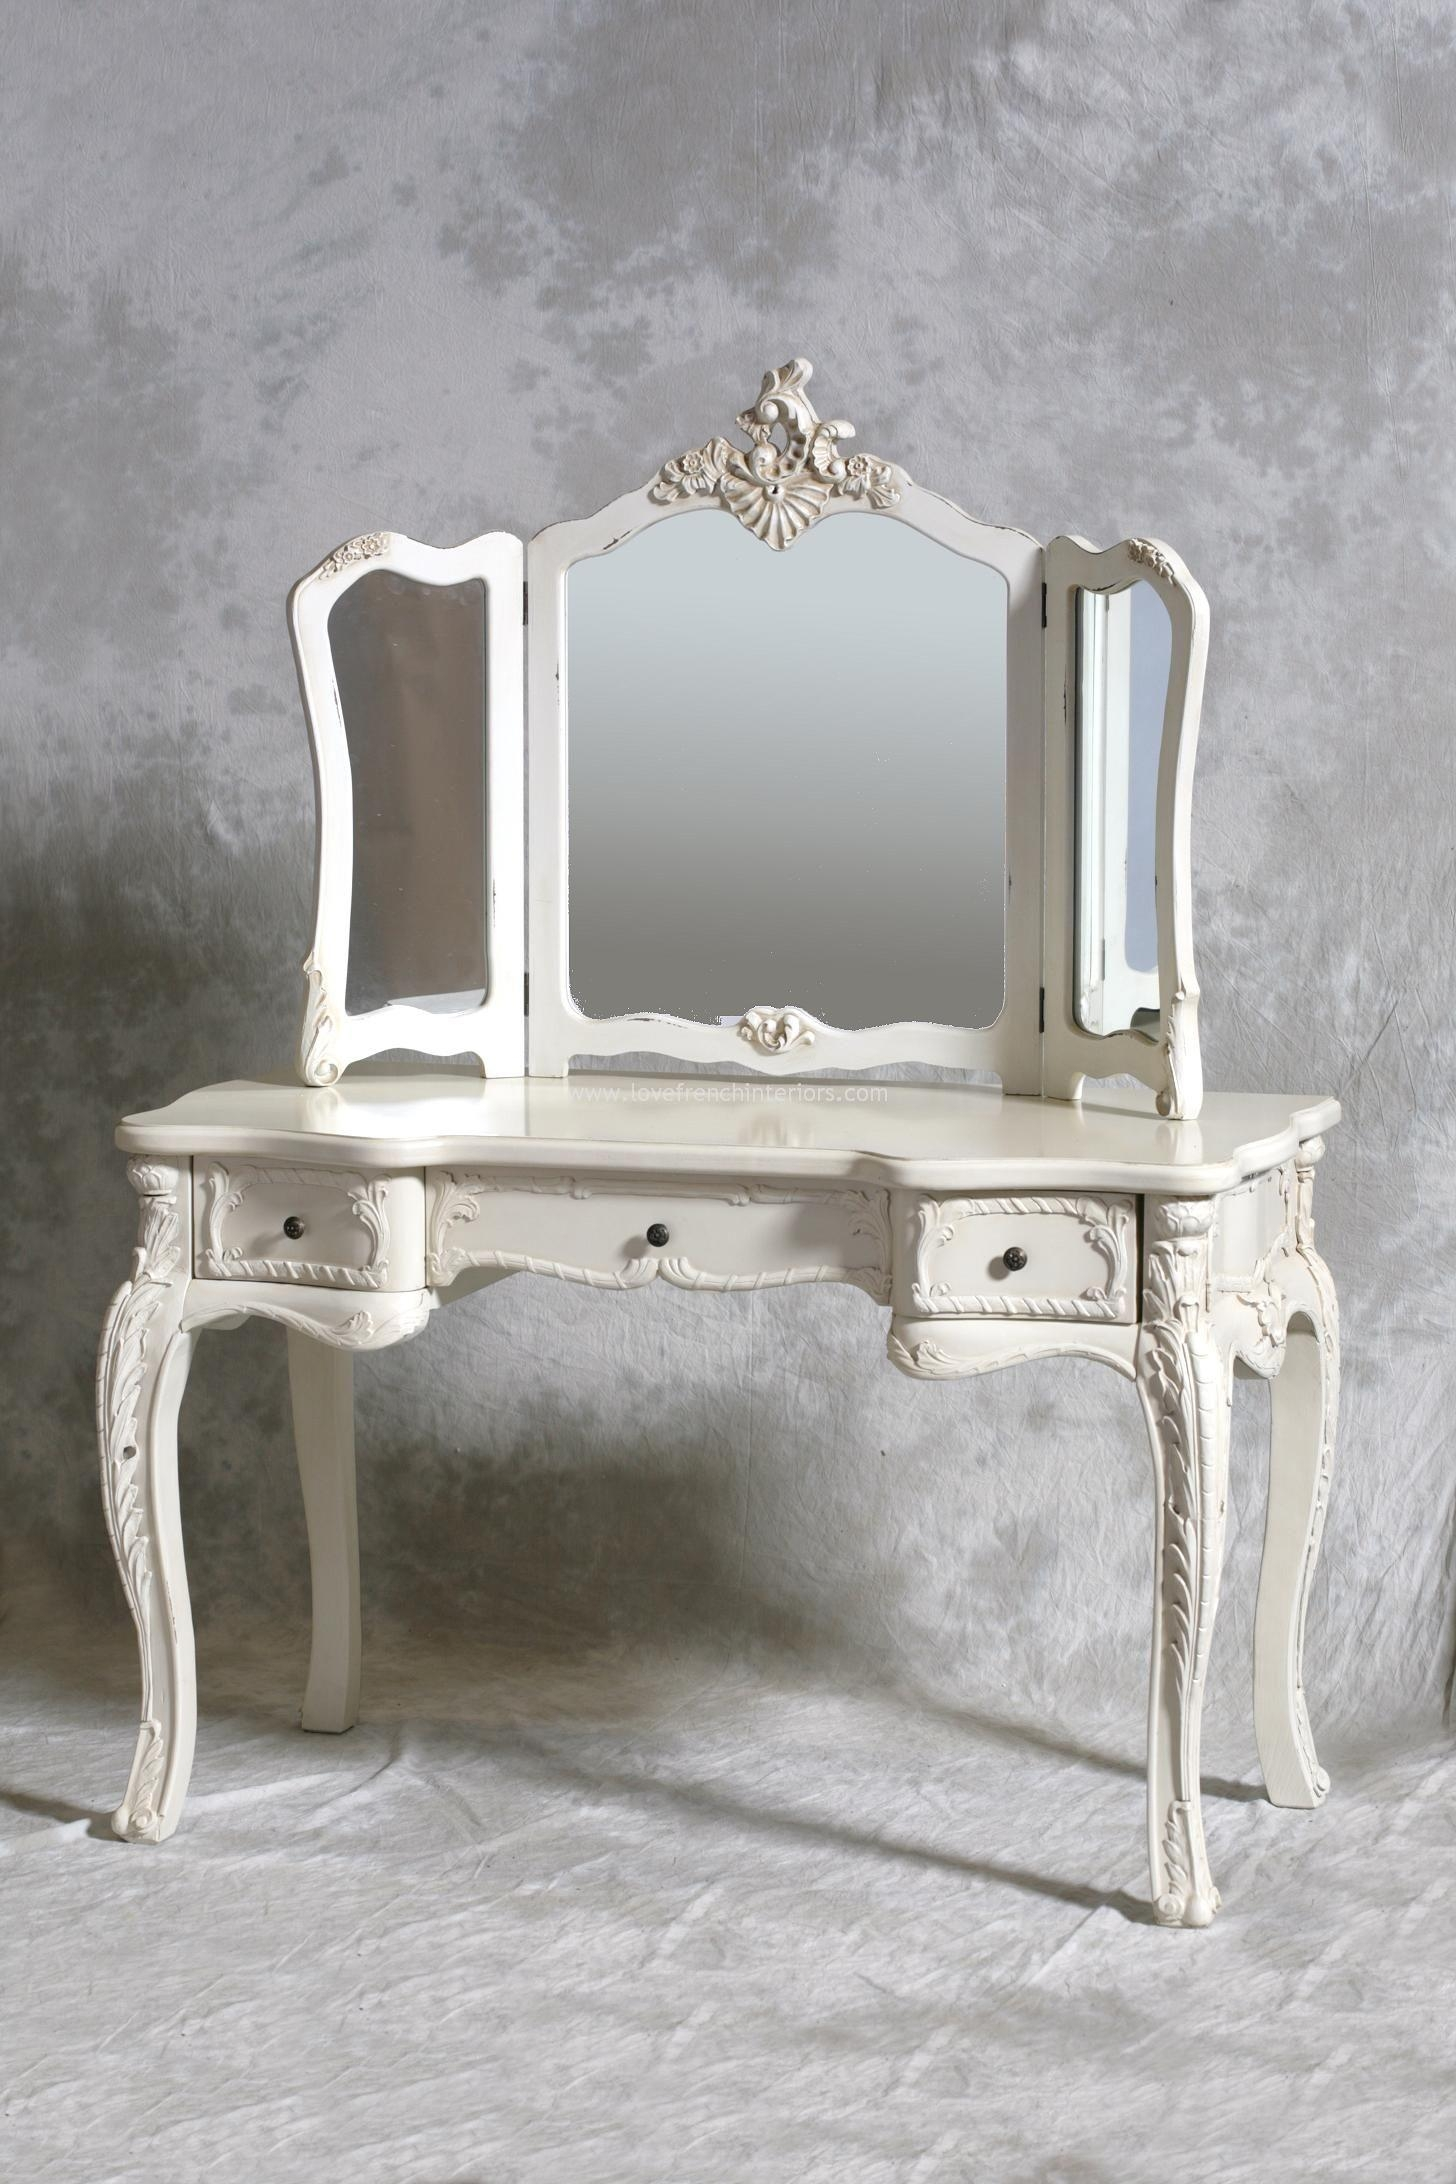 Furniture: Stunning Vanity Table With Lighted Mirror For Home For Antique Mirrored Furniture (Image 14 of 20)